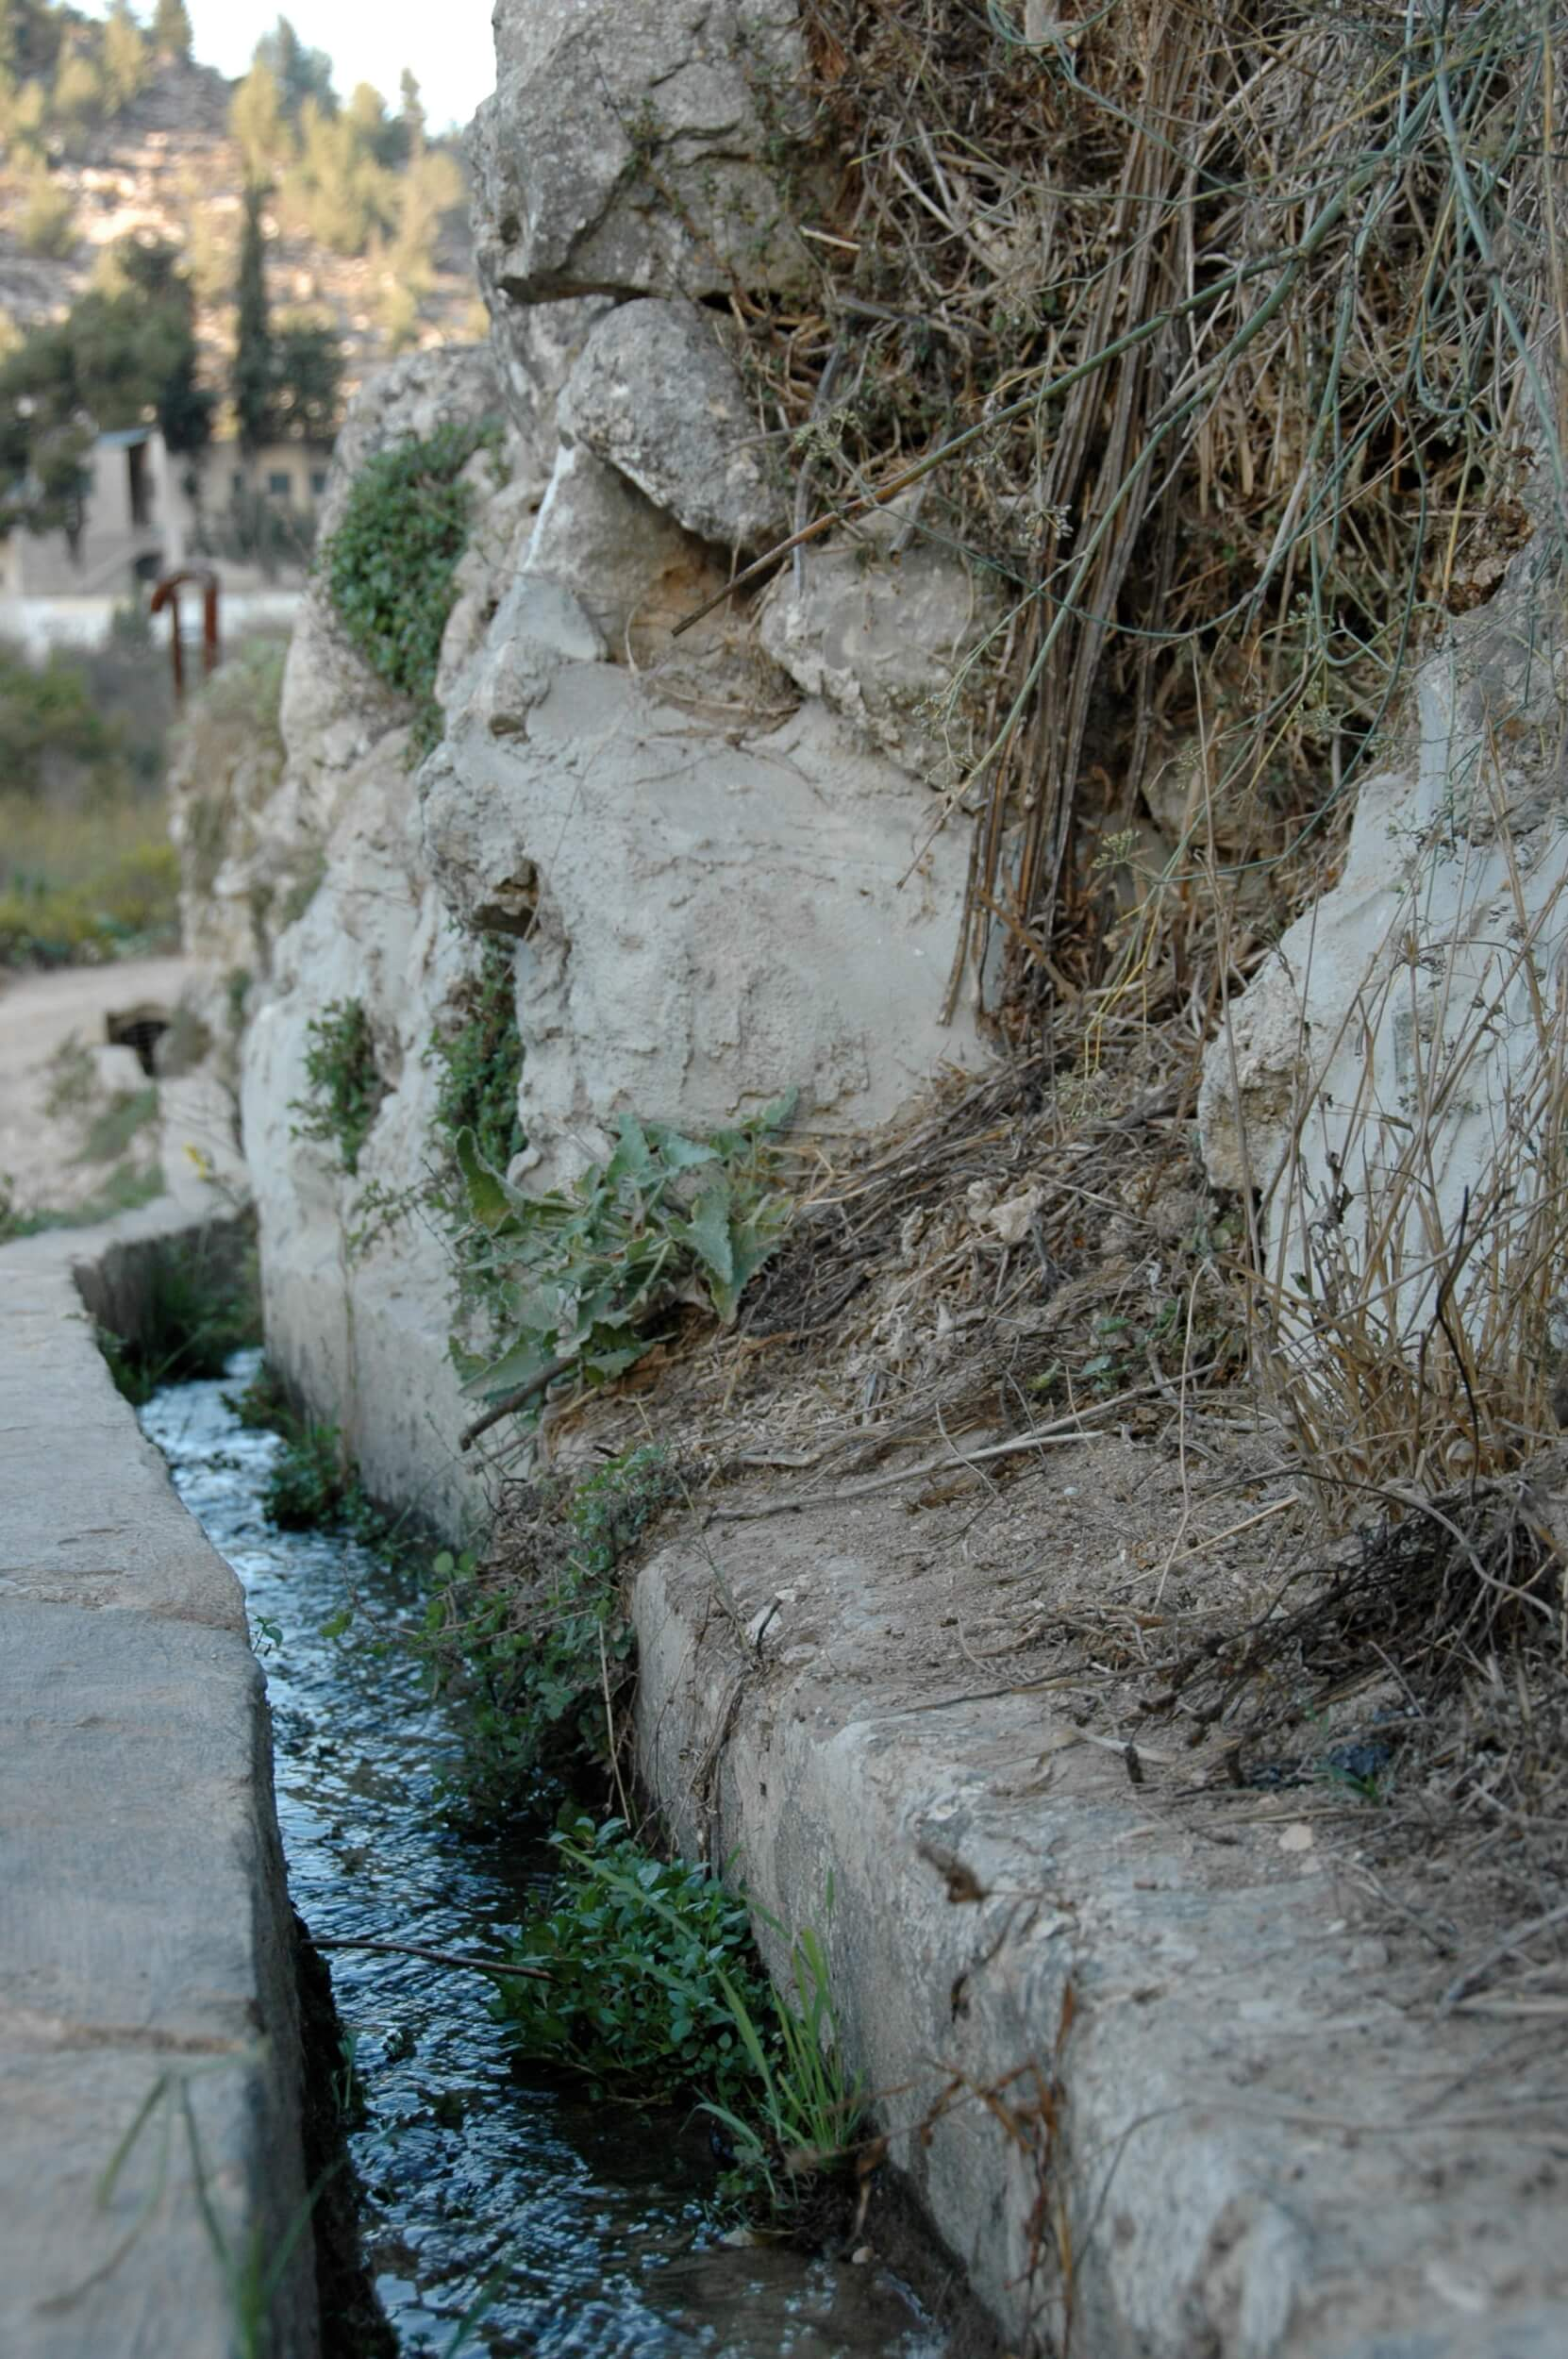 Battir is famous for its ancient irrigation system that dates back to the Roman period. The system would be damaged if a wall were built. (Photo: Sarah Levy)